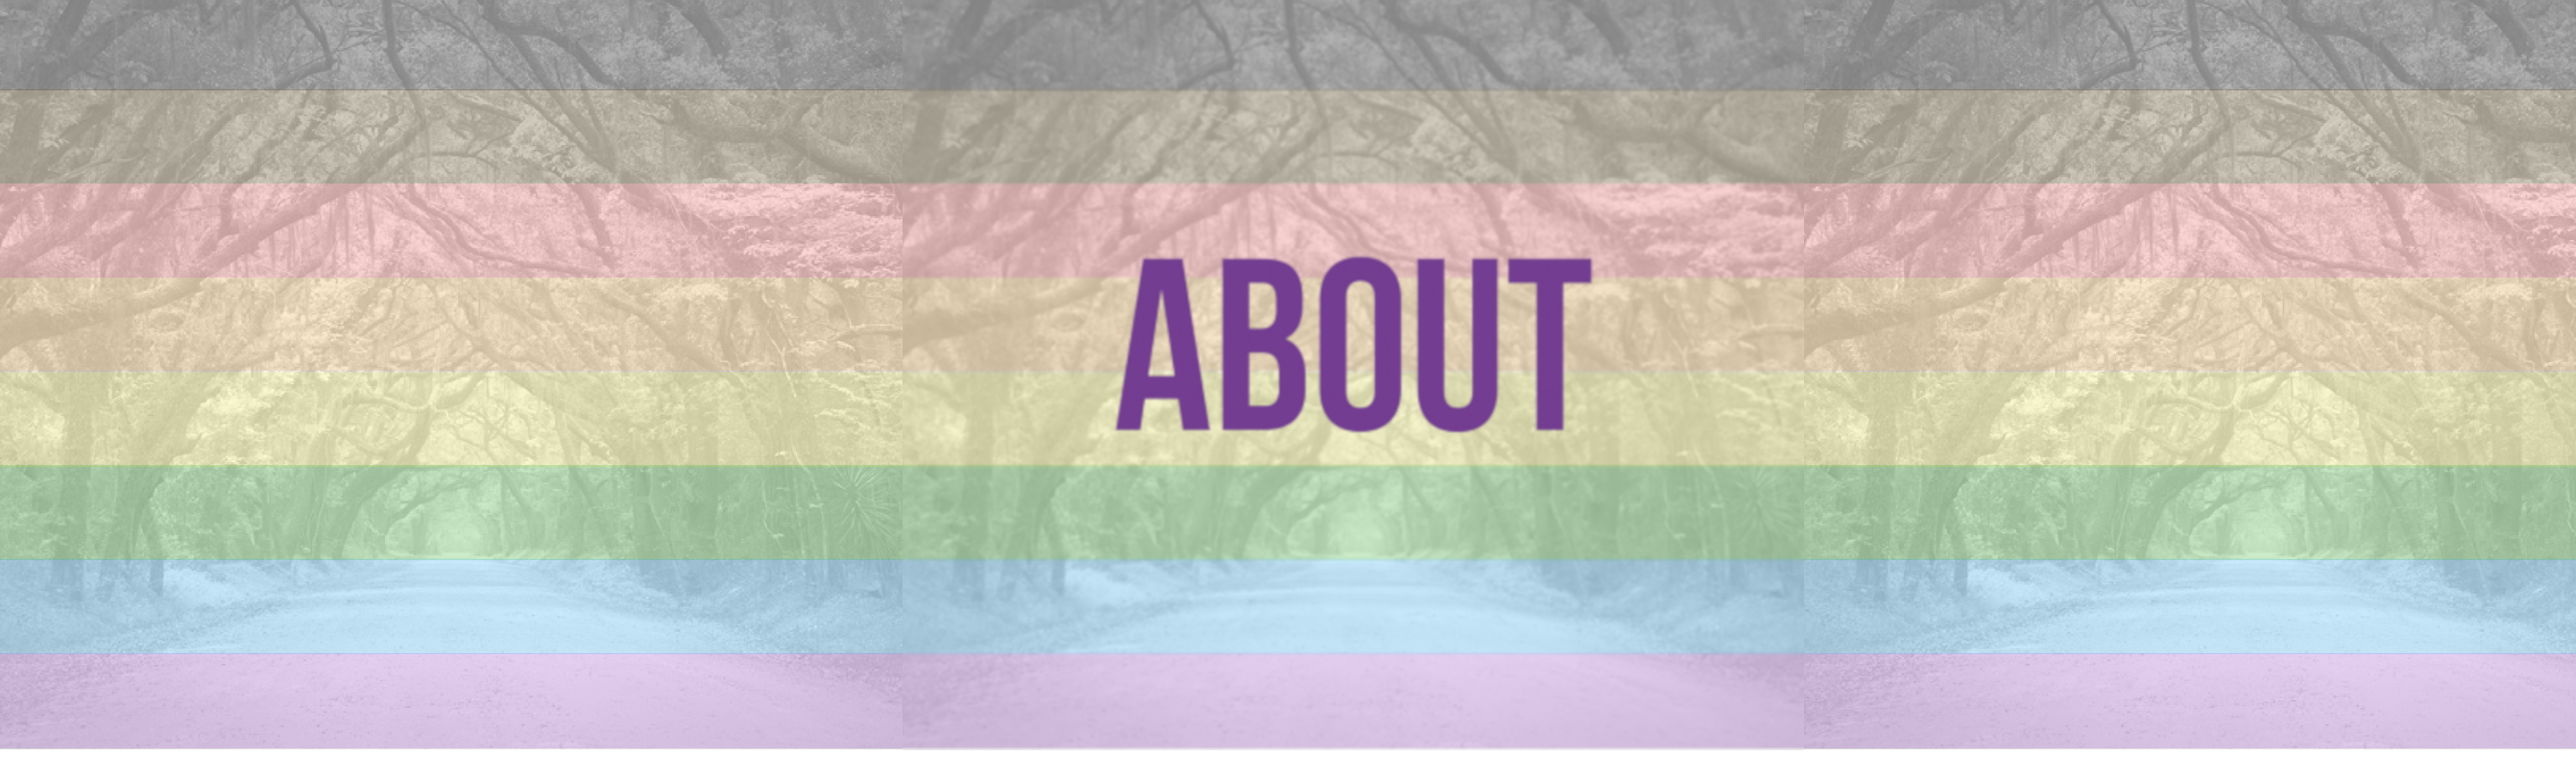 Documenting LGBTQ Life: About